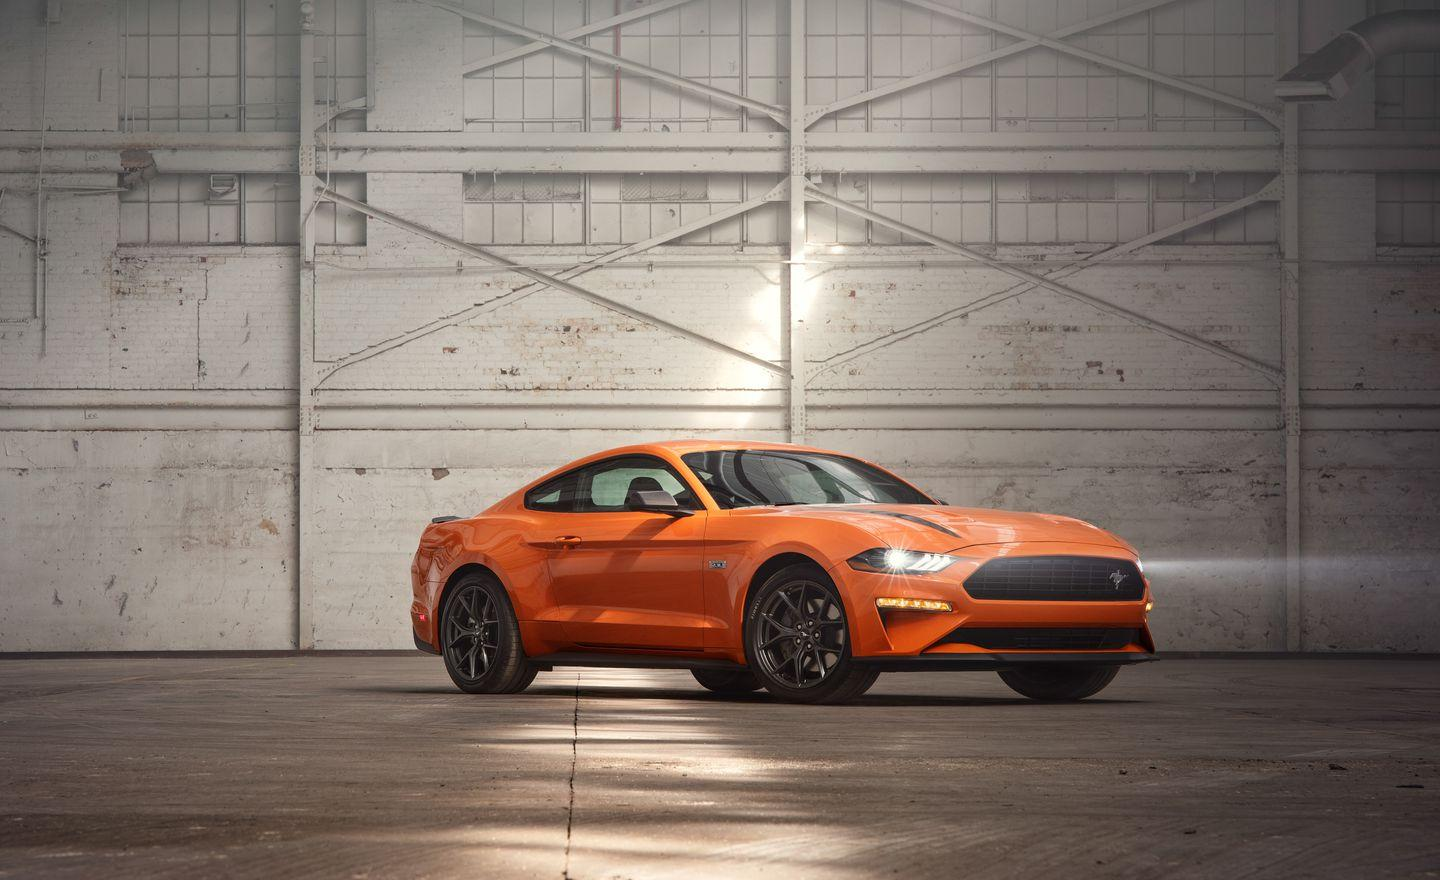 <p>Completed, the engine is rated for 330 horsepower; that's 20 ponies shy of the 350-hp tune as utilized in the Focus RS application but 20 more than the 310-hp version of the 2.3-liter EcoBoost in the 2019 Mustang. Torque is unchanged at 350 lb-ft, the same in all three cars.</p>